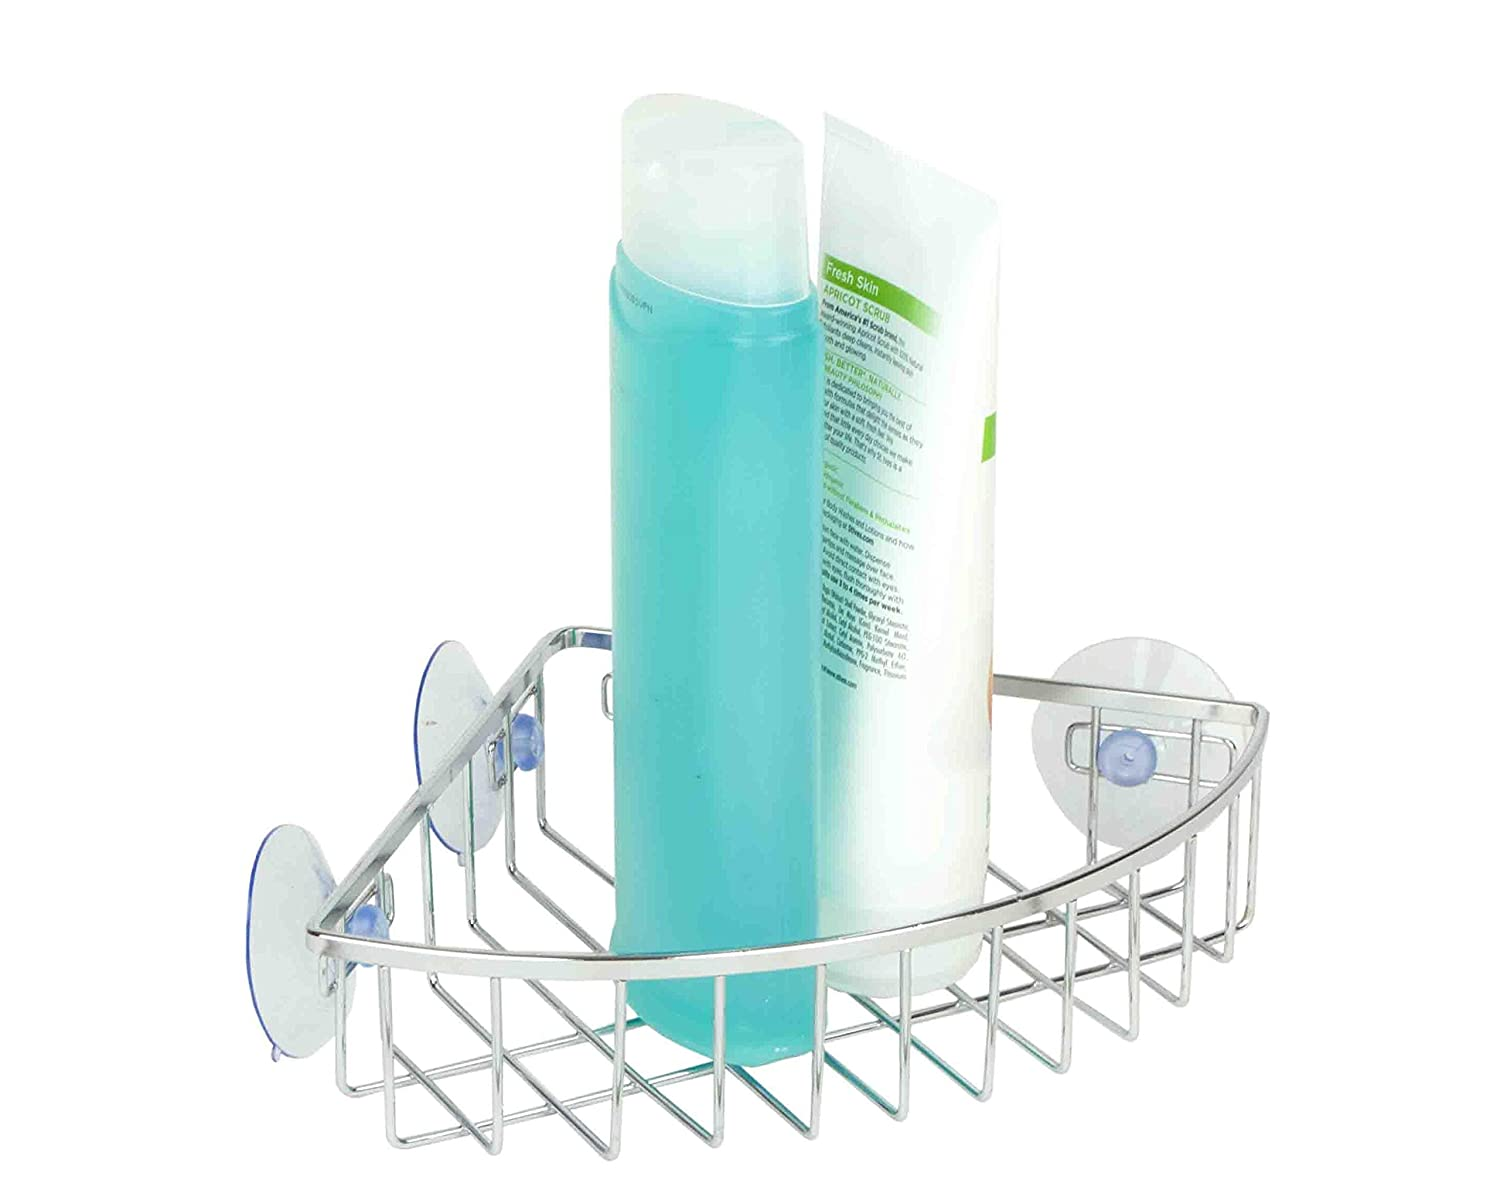 Amazon.com: Home Basics Suction Corner Caddy - Chrome: Home & Kitchen